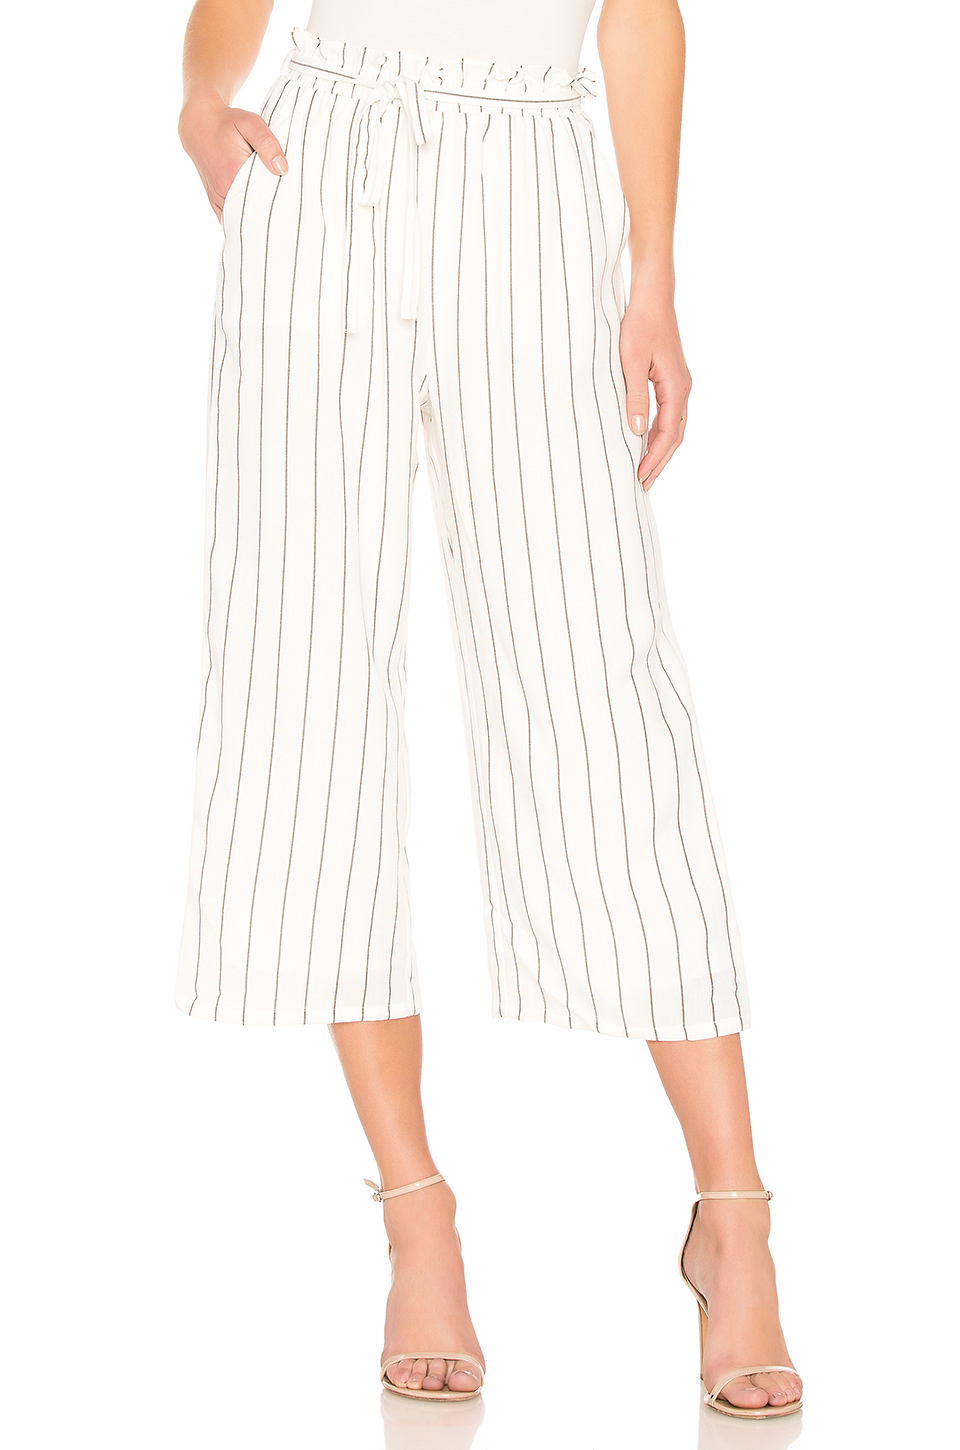 MINKPINK Pin Stripe Pant in Off White & Black